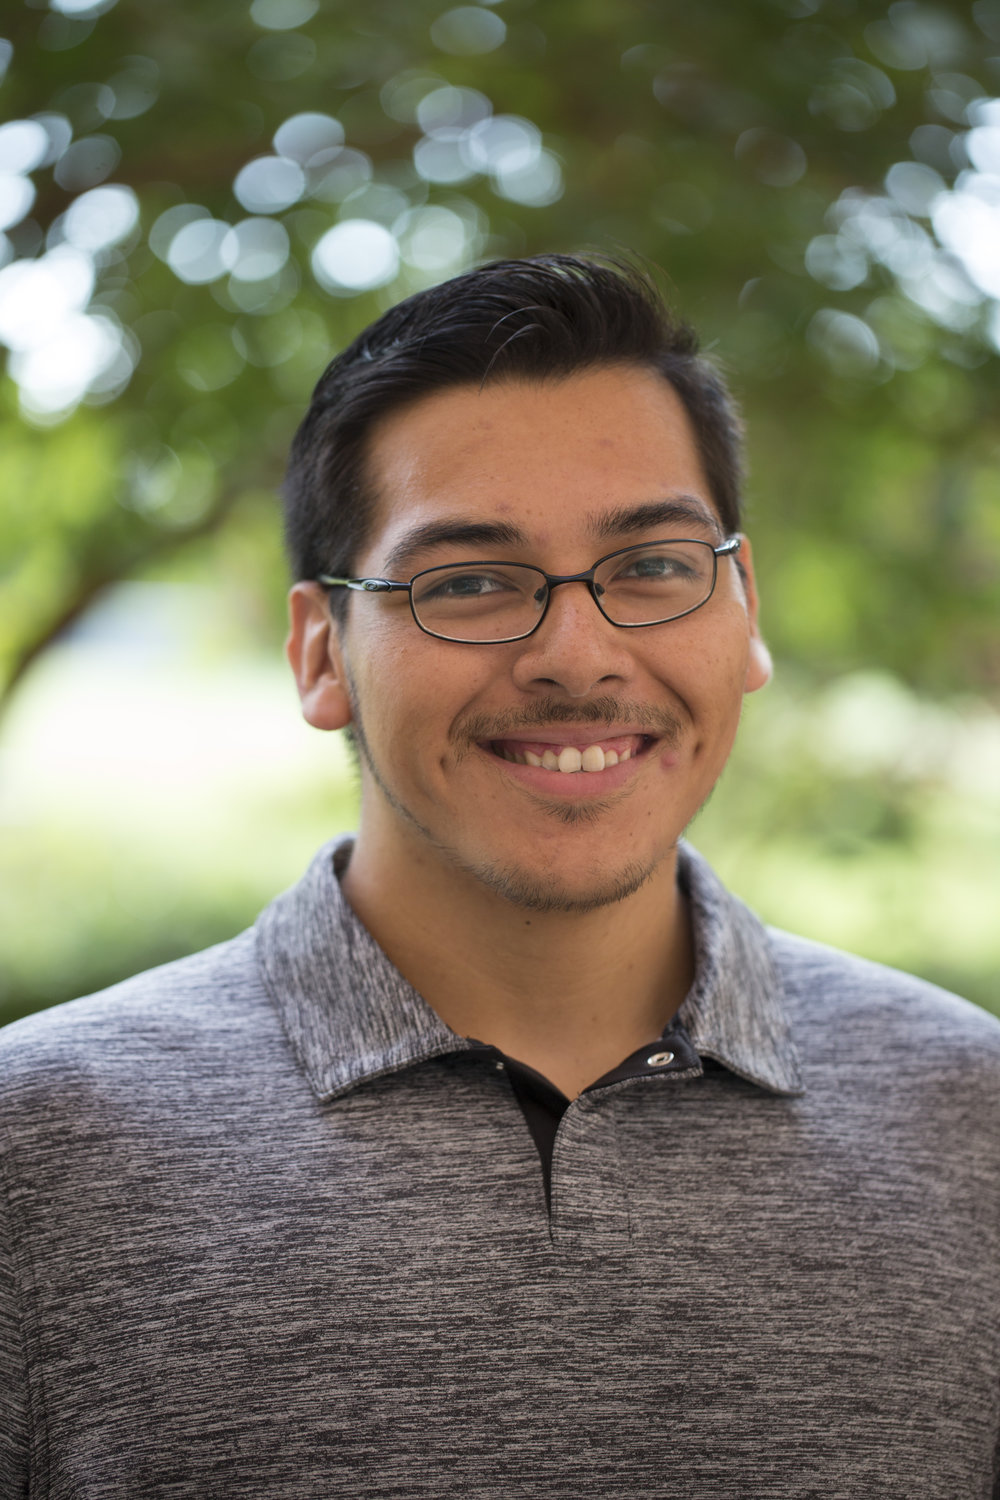 Henry Lujan Jr., B.S. - Fourth-Year Ph.D. CandidateExpected Graduation Date: Fall 2020Henry_Lujan@baylor.eduLinkedIn